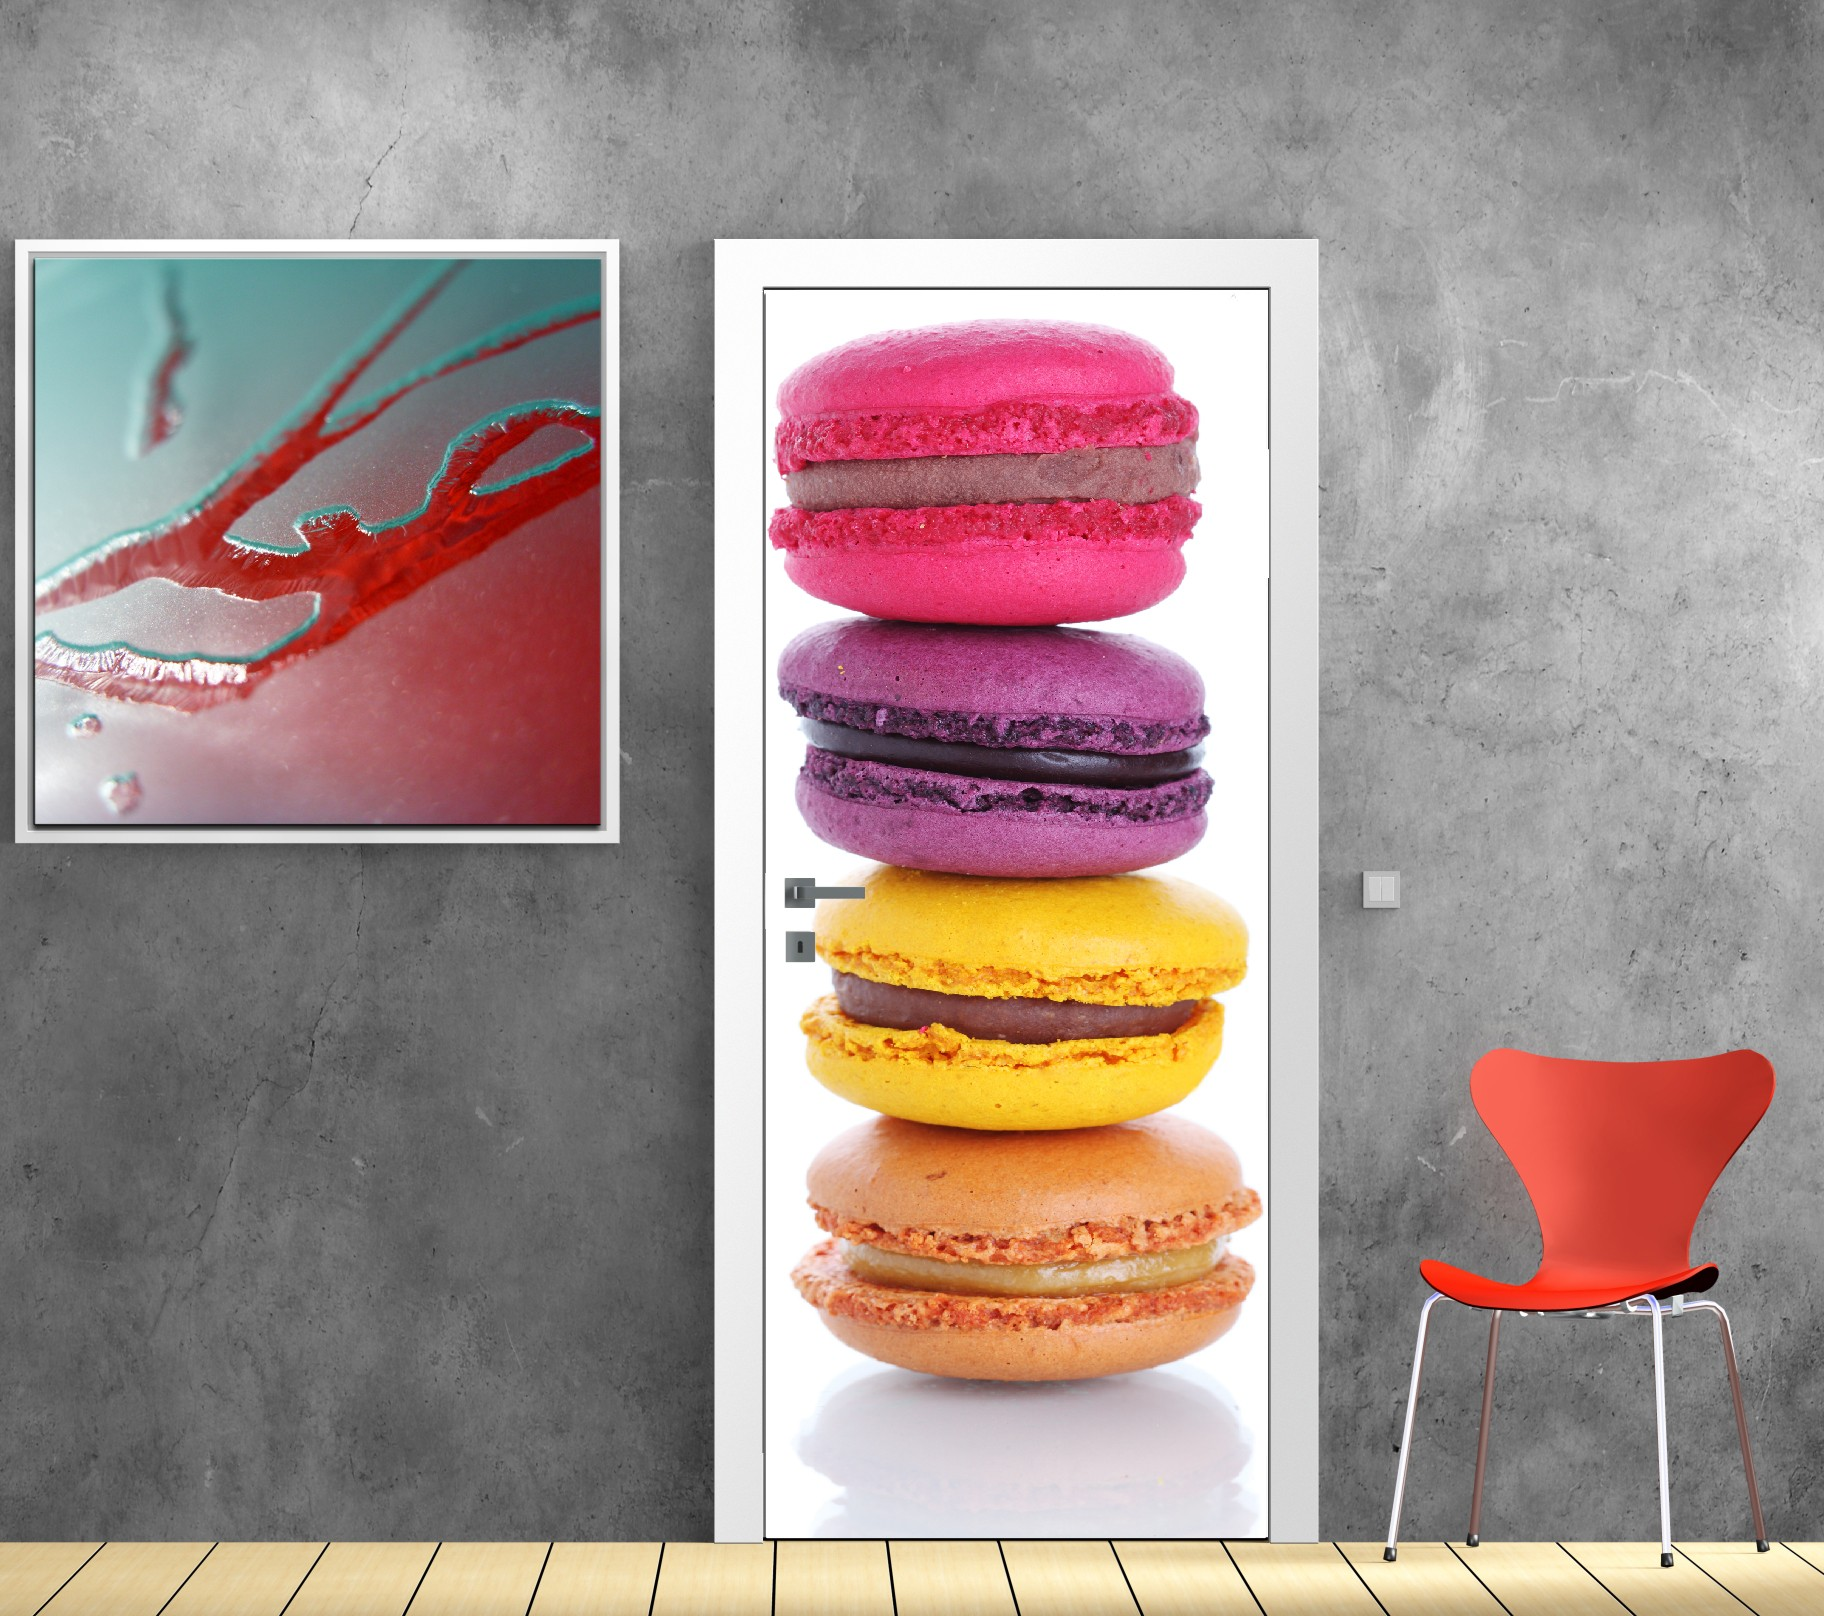 Stickers Decoration Porte Interieur Stickers Porte Déco Cuisine Macaron Stickers Porte Déco Cuisine Macaron